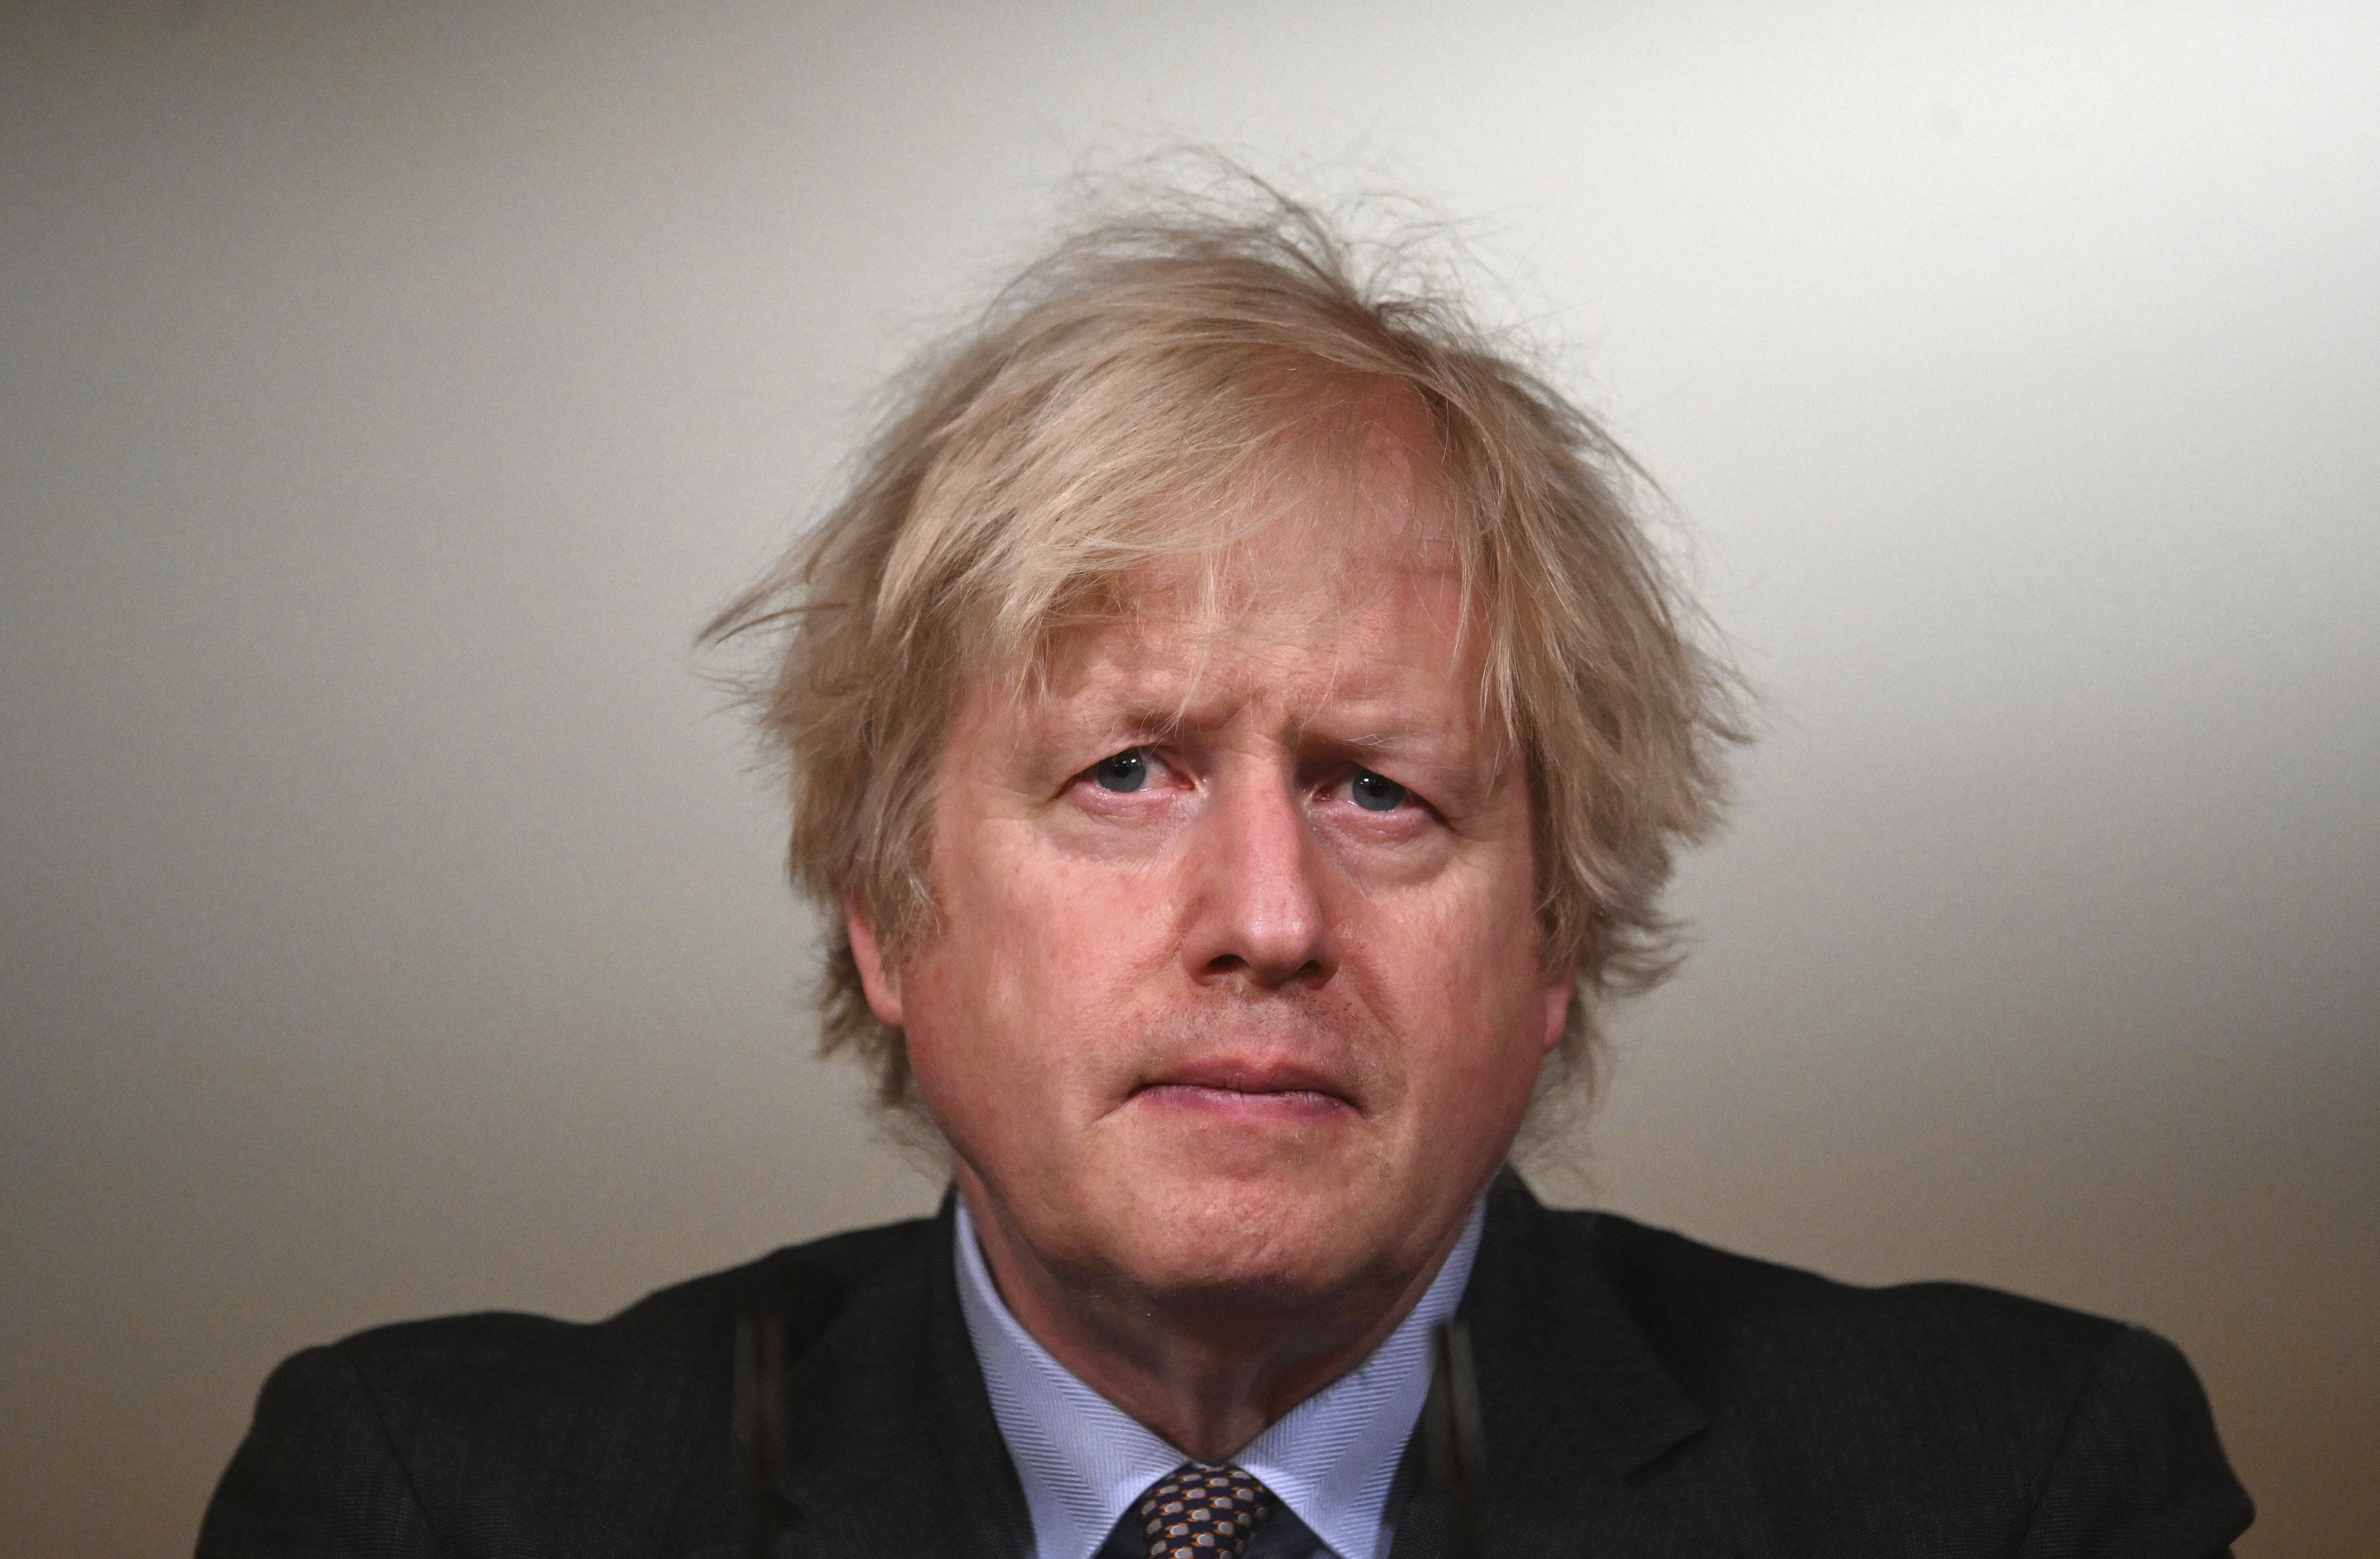 Britain's Prime Minister Boris Johnson speaks during a televised press conference at 10 Downing Street in London, Monday, Feb. 22, 2021.